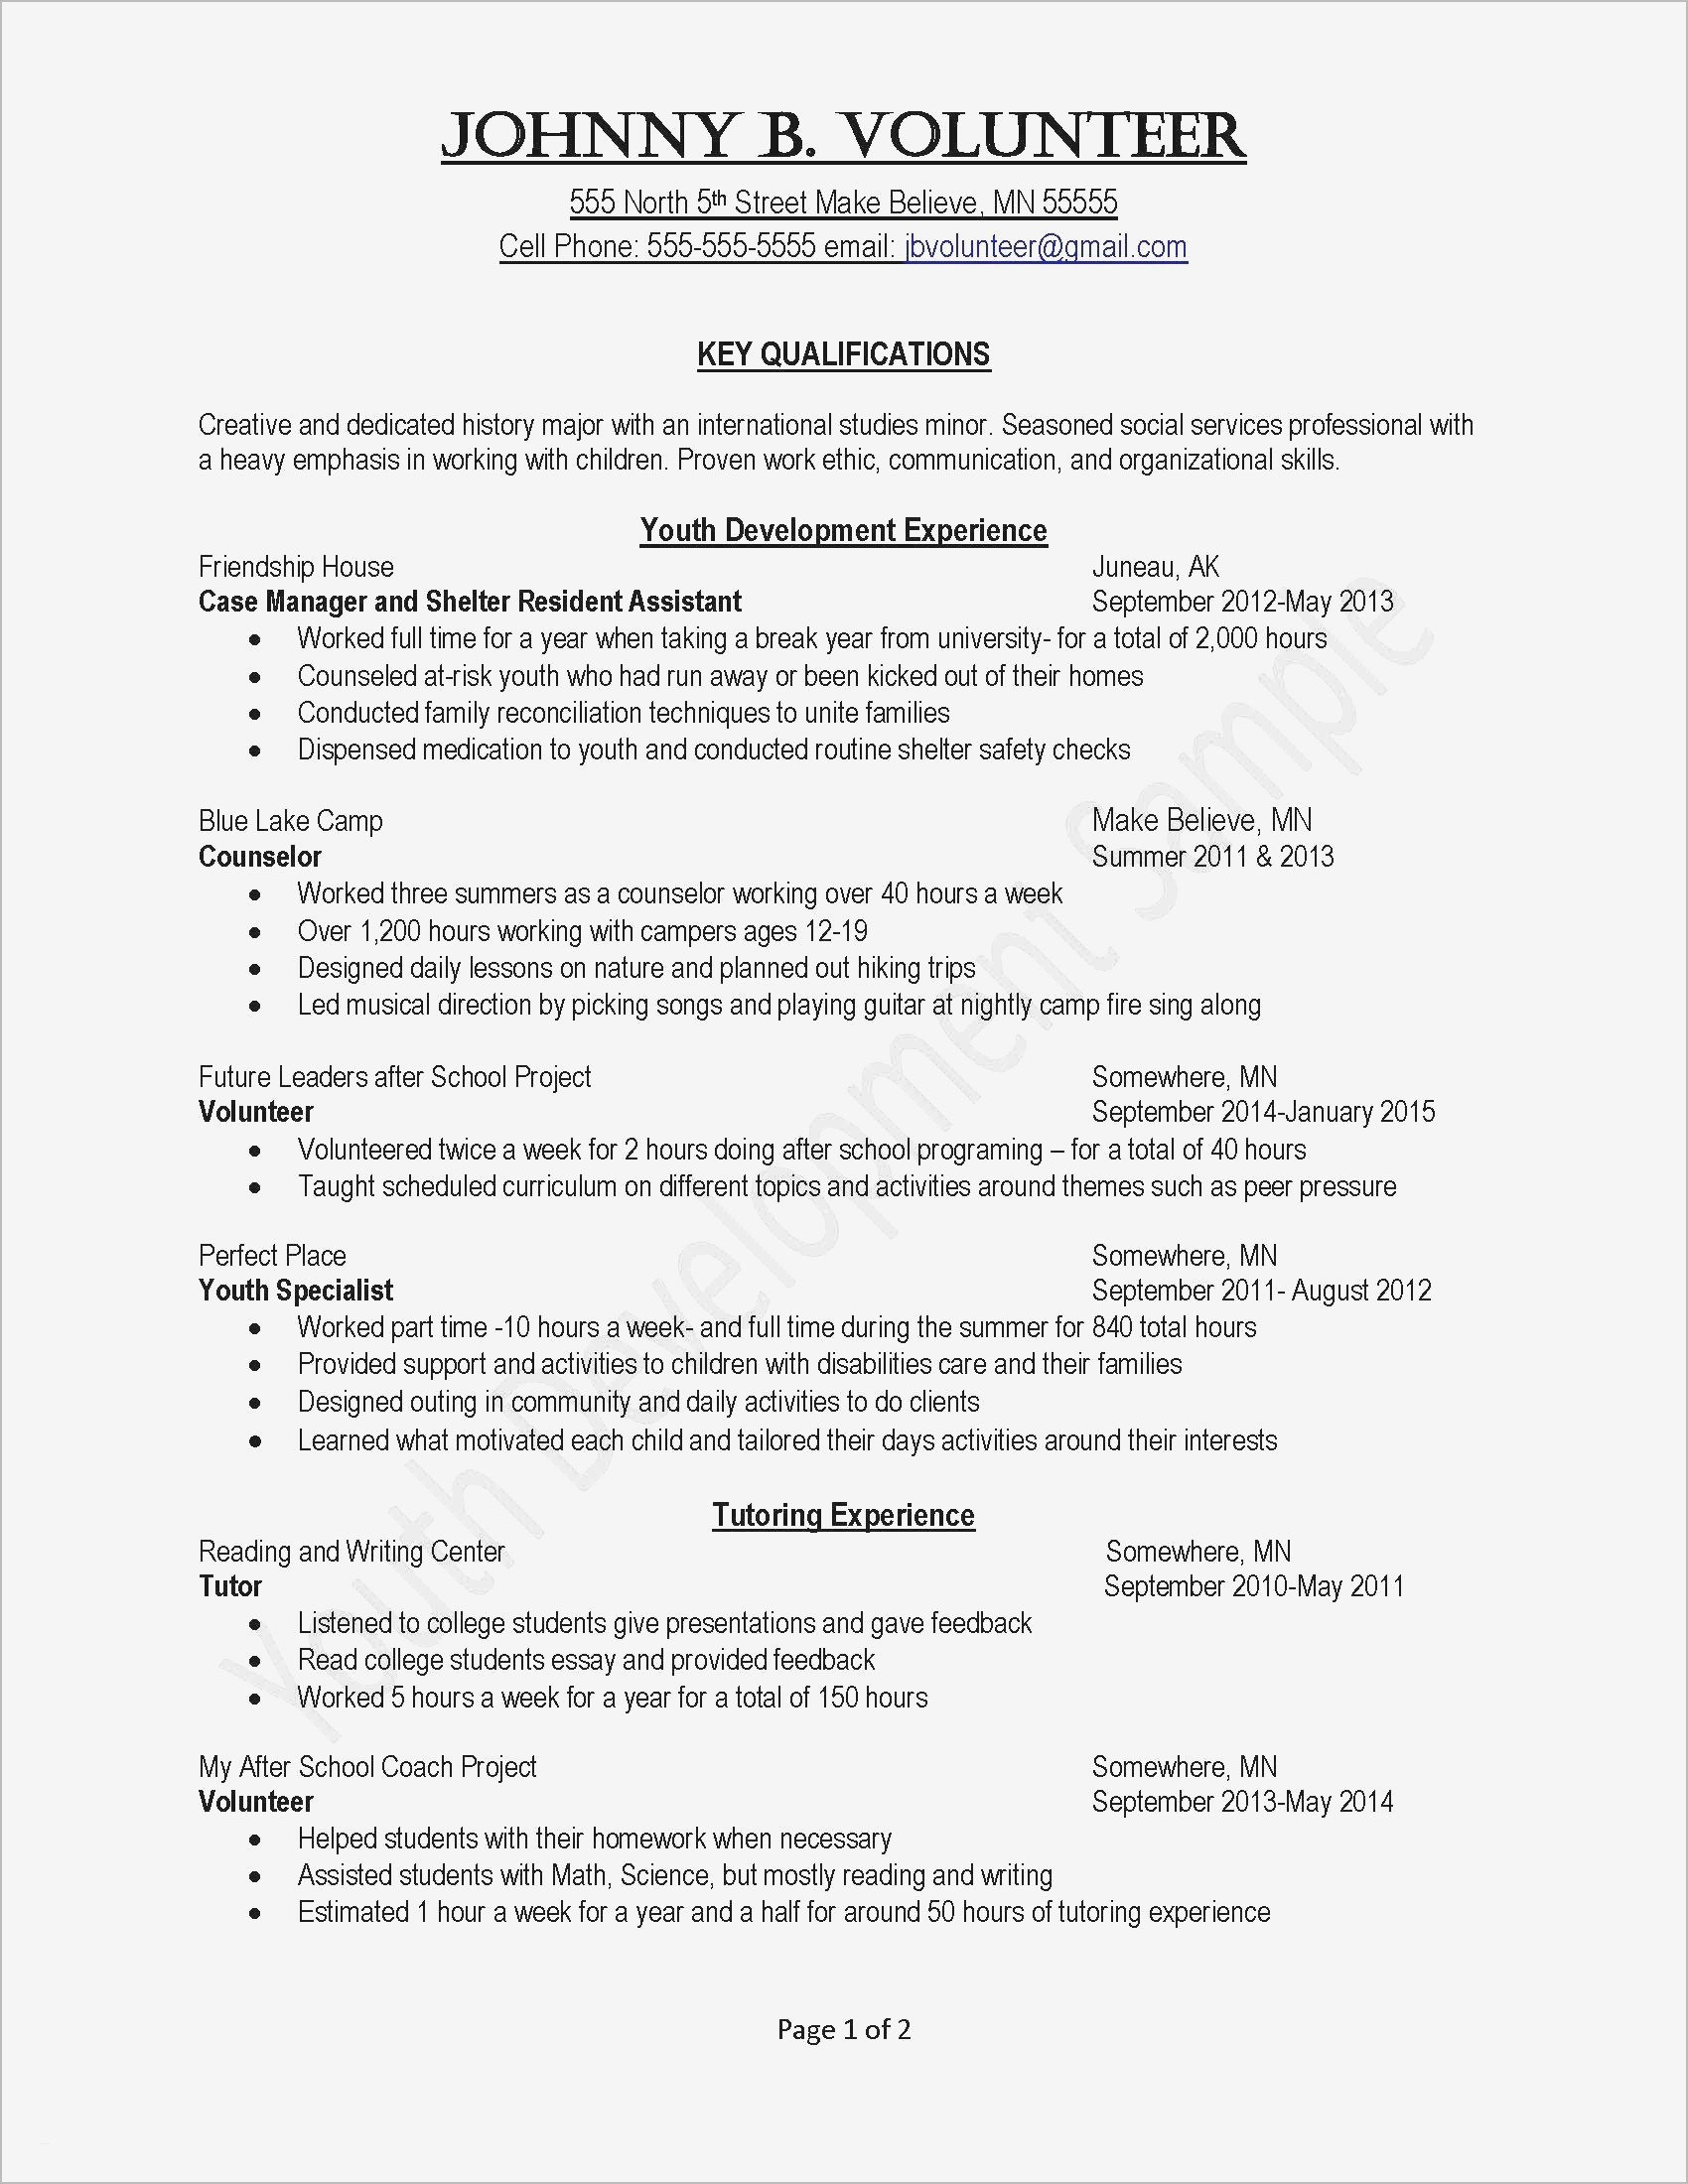 skills usa resume template Collection-Template For Cover Letter And Resume Fresh Activities Resume Template Valid Job Fer Letter Template Us Copy Od 8-o